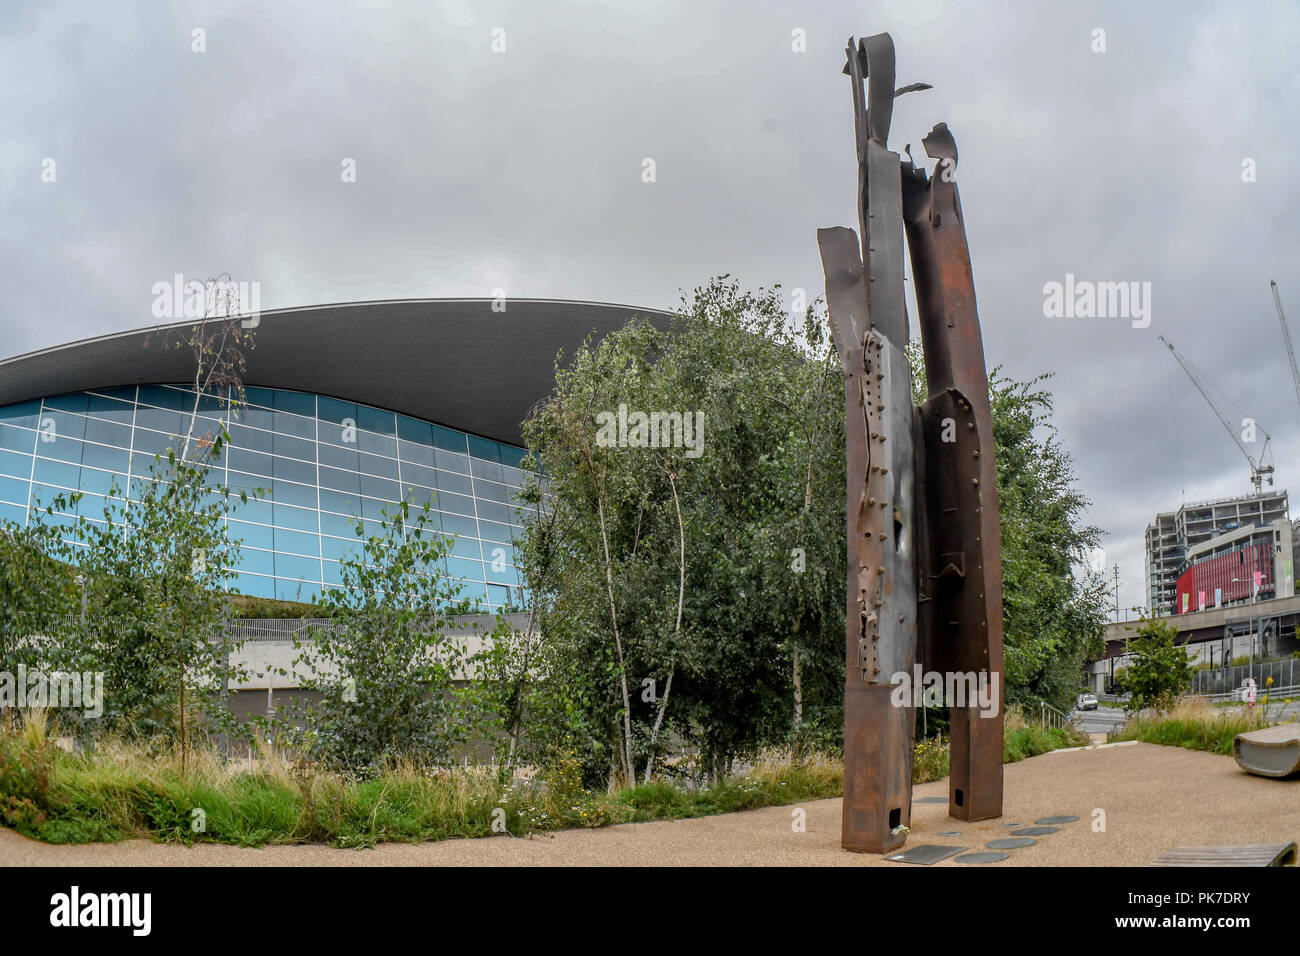 911 steel beam structure In The Olympic Park, London, UK. 11th September 2018. The 911 steel beam structure a Memorial In The Olympic Park. A memories of September 11, 2001 attack of 3,000 death. The world never is the same again 17 years later from Al Qaeda 's to Taliban, IS, Daesh to ISIS? or regimes change? logic seven largely Muslim countries (Afghanistan, Iraq, Libya, Pakistan, Somalia, Syria, and Yemen) none of them has any link to the 9/11 attacks? and destroyed 20 million Arabs/Muslim killed and over 65 millions refugees?. Who is our real enemy of mankind, an enemy of humanity? shouldn - Stock Image